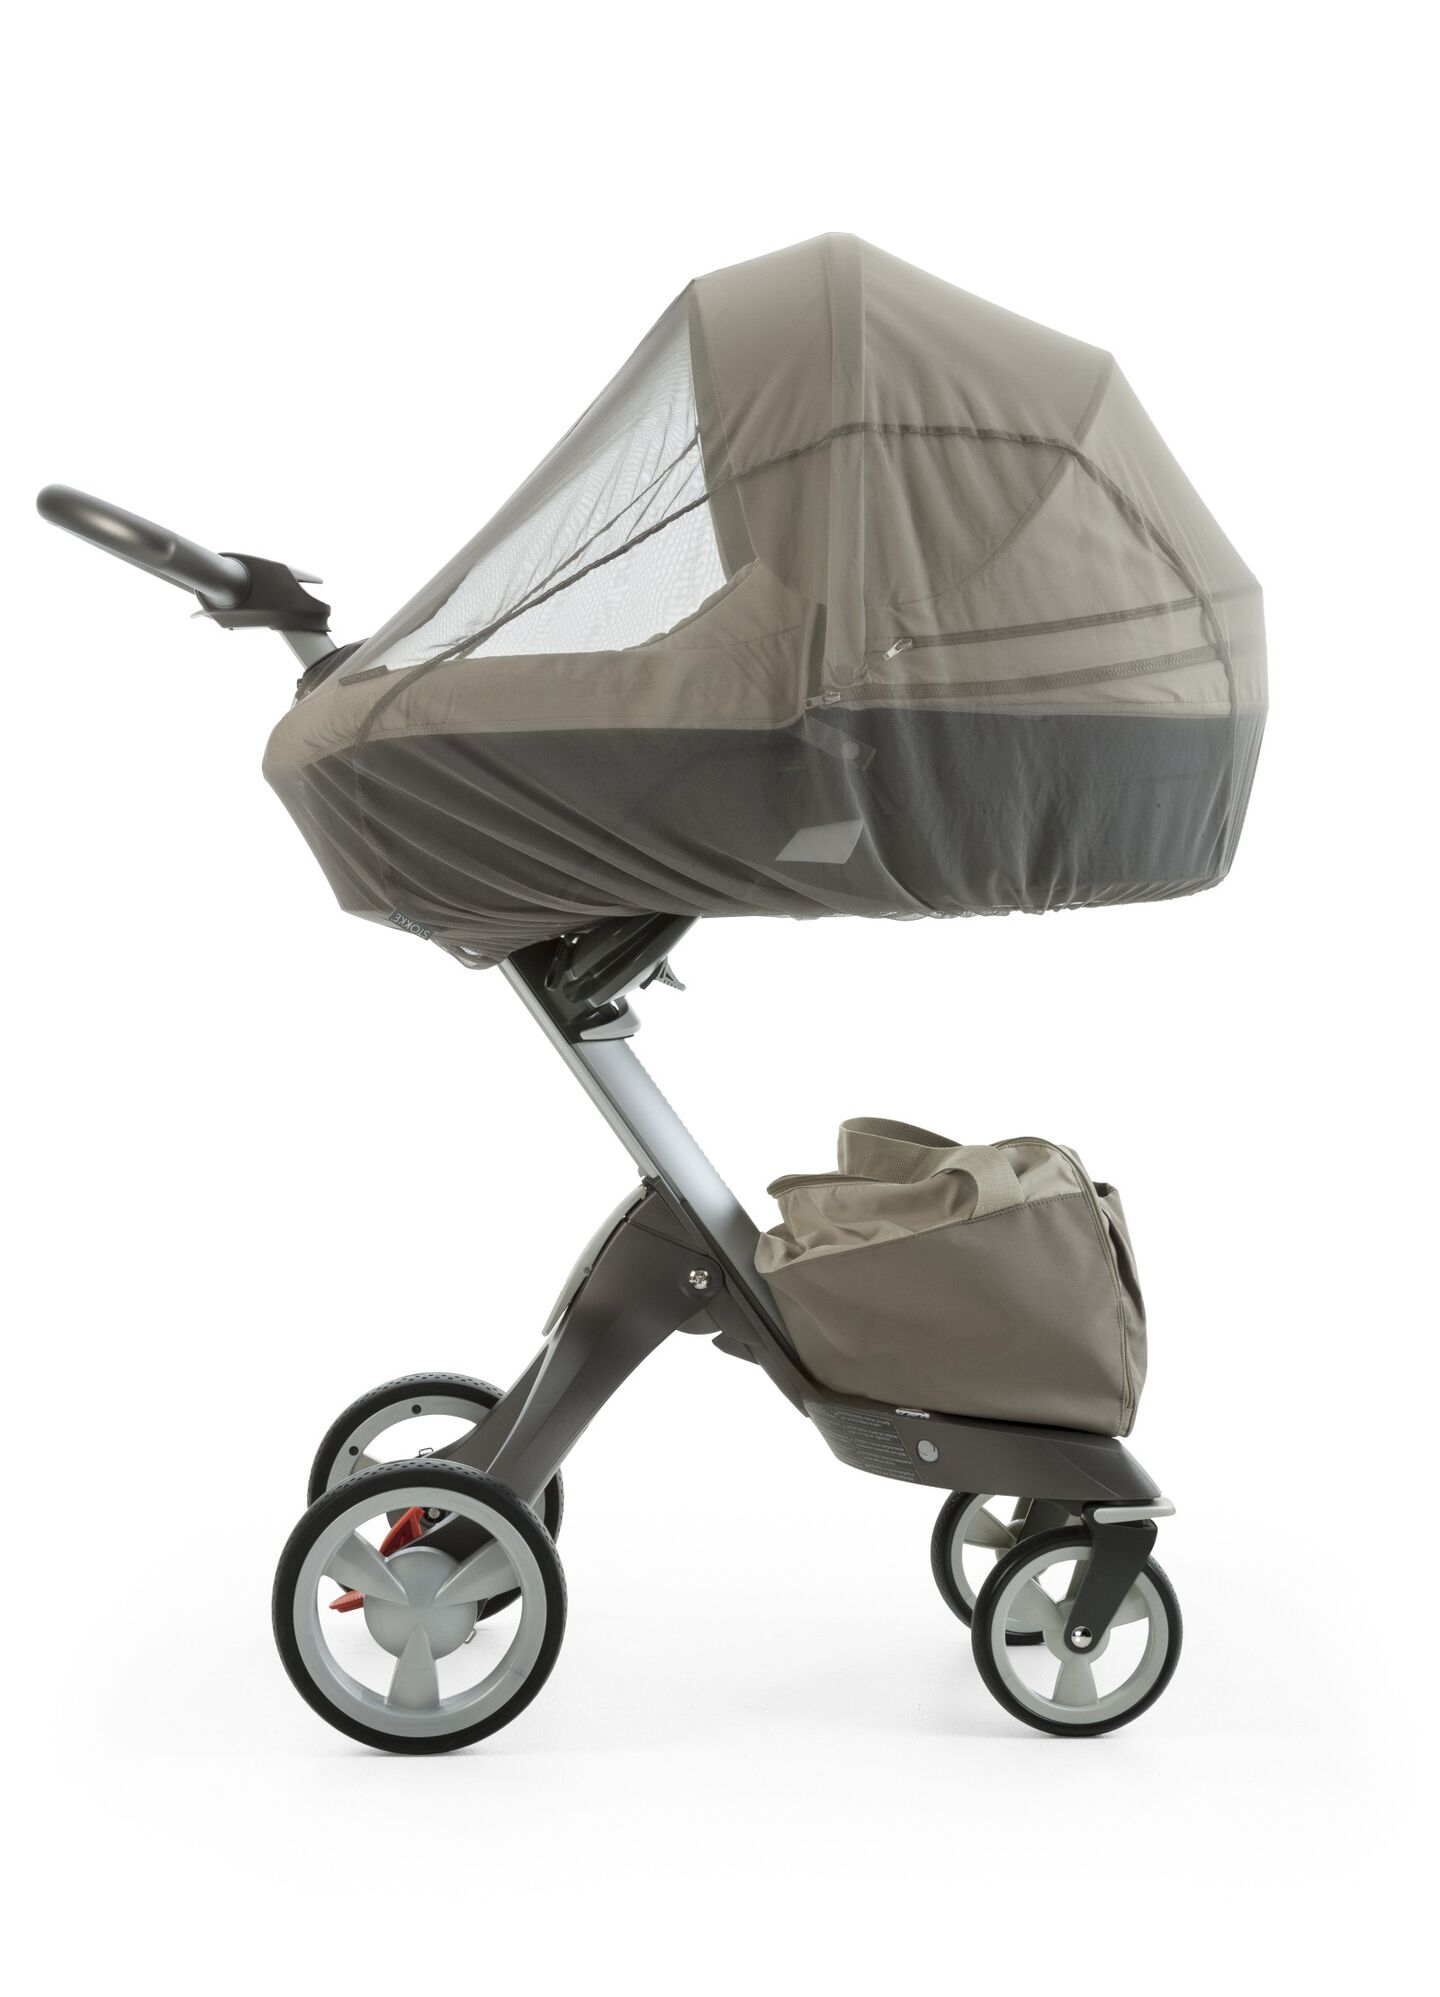 Carry Cot, Beige. Mosquito Net.